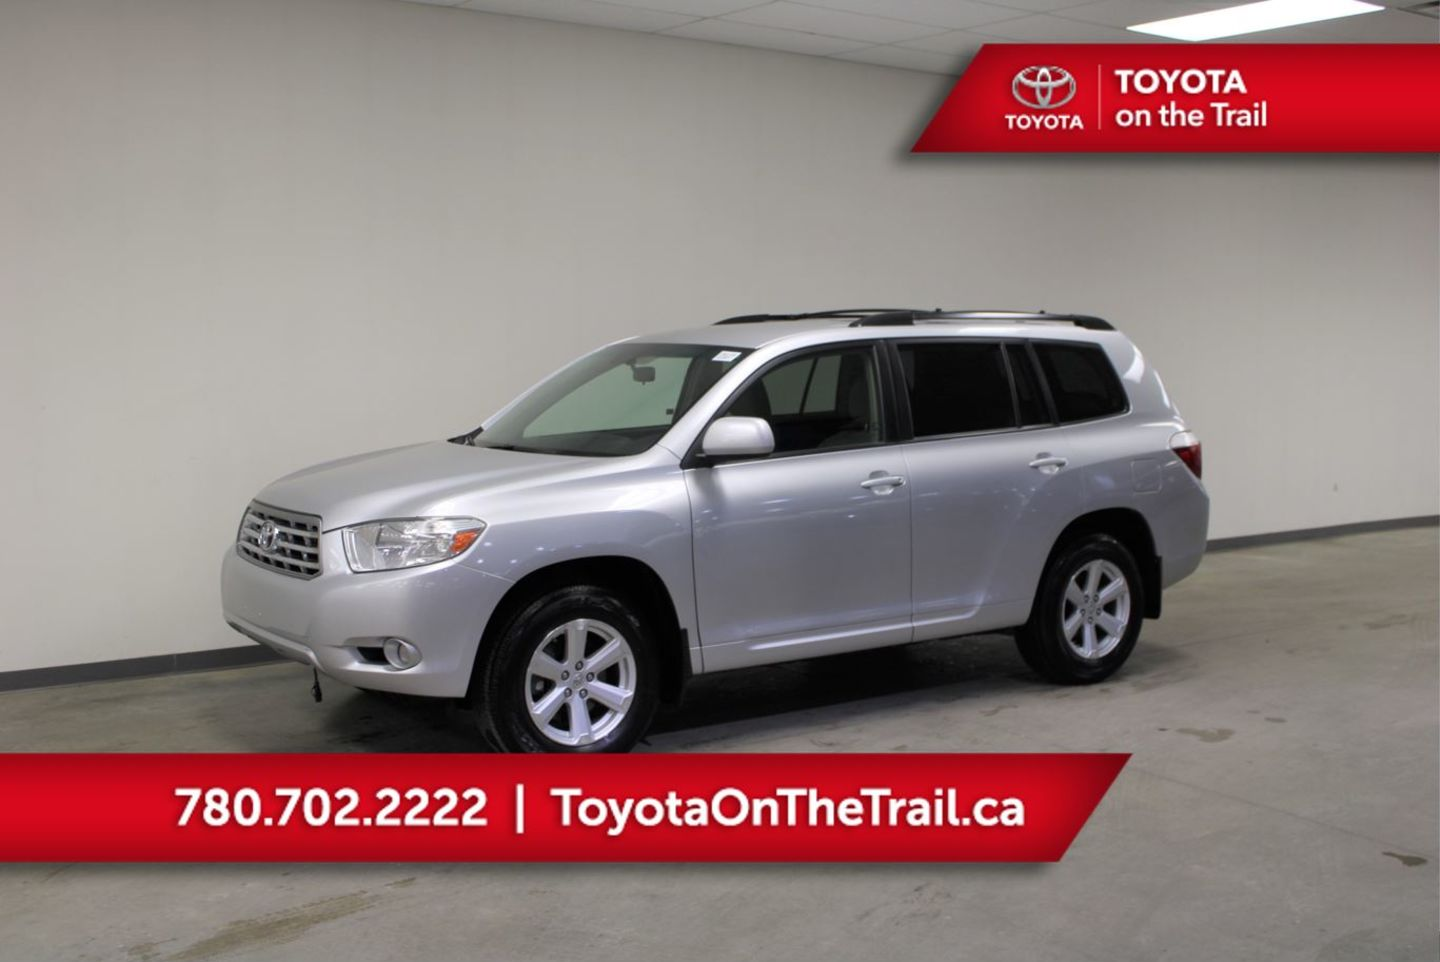 2008 Toyota Highlander SR5 for sale in Edmonton, Alberta